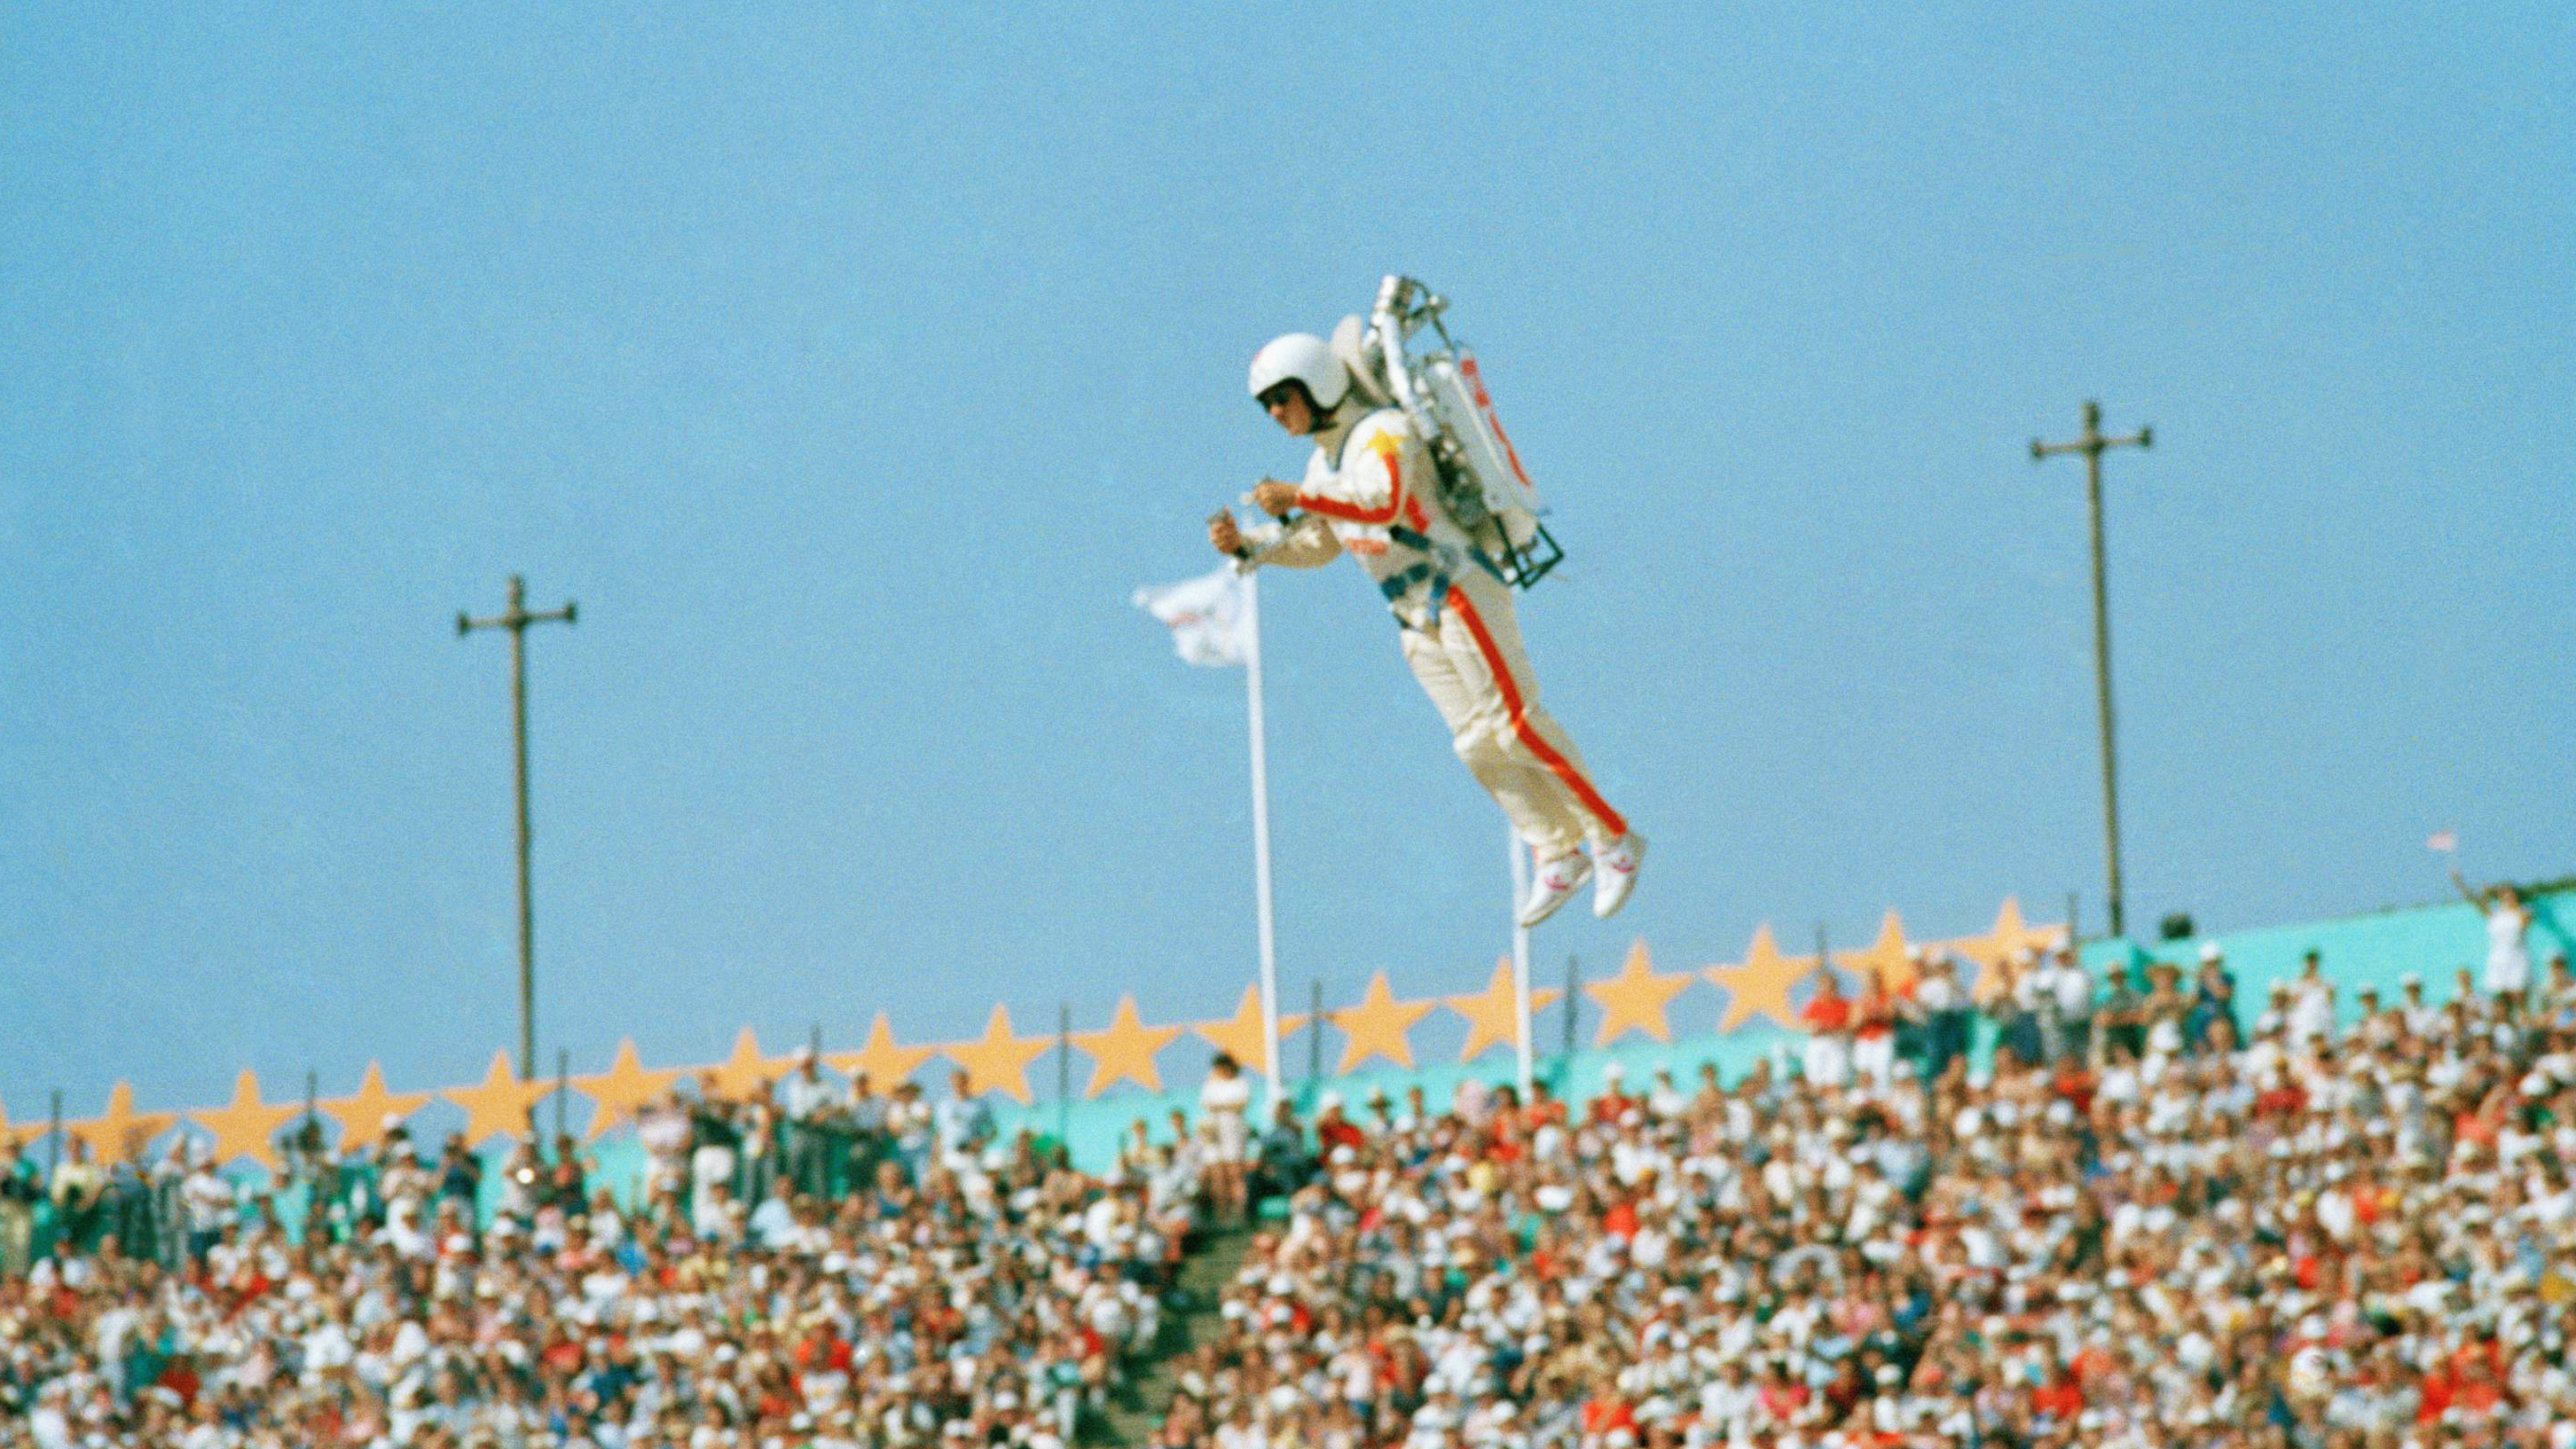 """FILE - In this July 28, 1984 file photo Bill Suiter """"Rocket Man"""" soars with the help of a jet pack during the welcoming of nations at the Opening ceremonies of the 1984 Summer Olympics in the Los Angeles Memorial Coliseum. The IOC's ruling 15-member executive board will meet Sunday, July 24, 2016 via teleconference to weigh the unprecedented step of excluding Russia as a whole from the 2016 Rio Olympic Games because of systematic, state-sponsored cheating. (AP Photo/Rusty Kennedy, file)"""